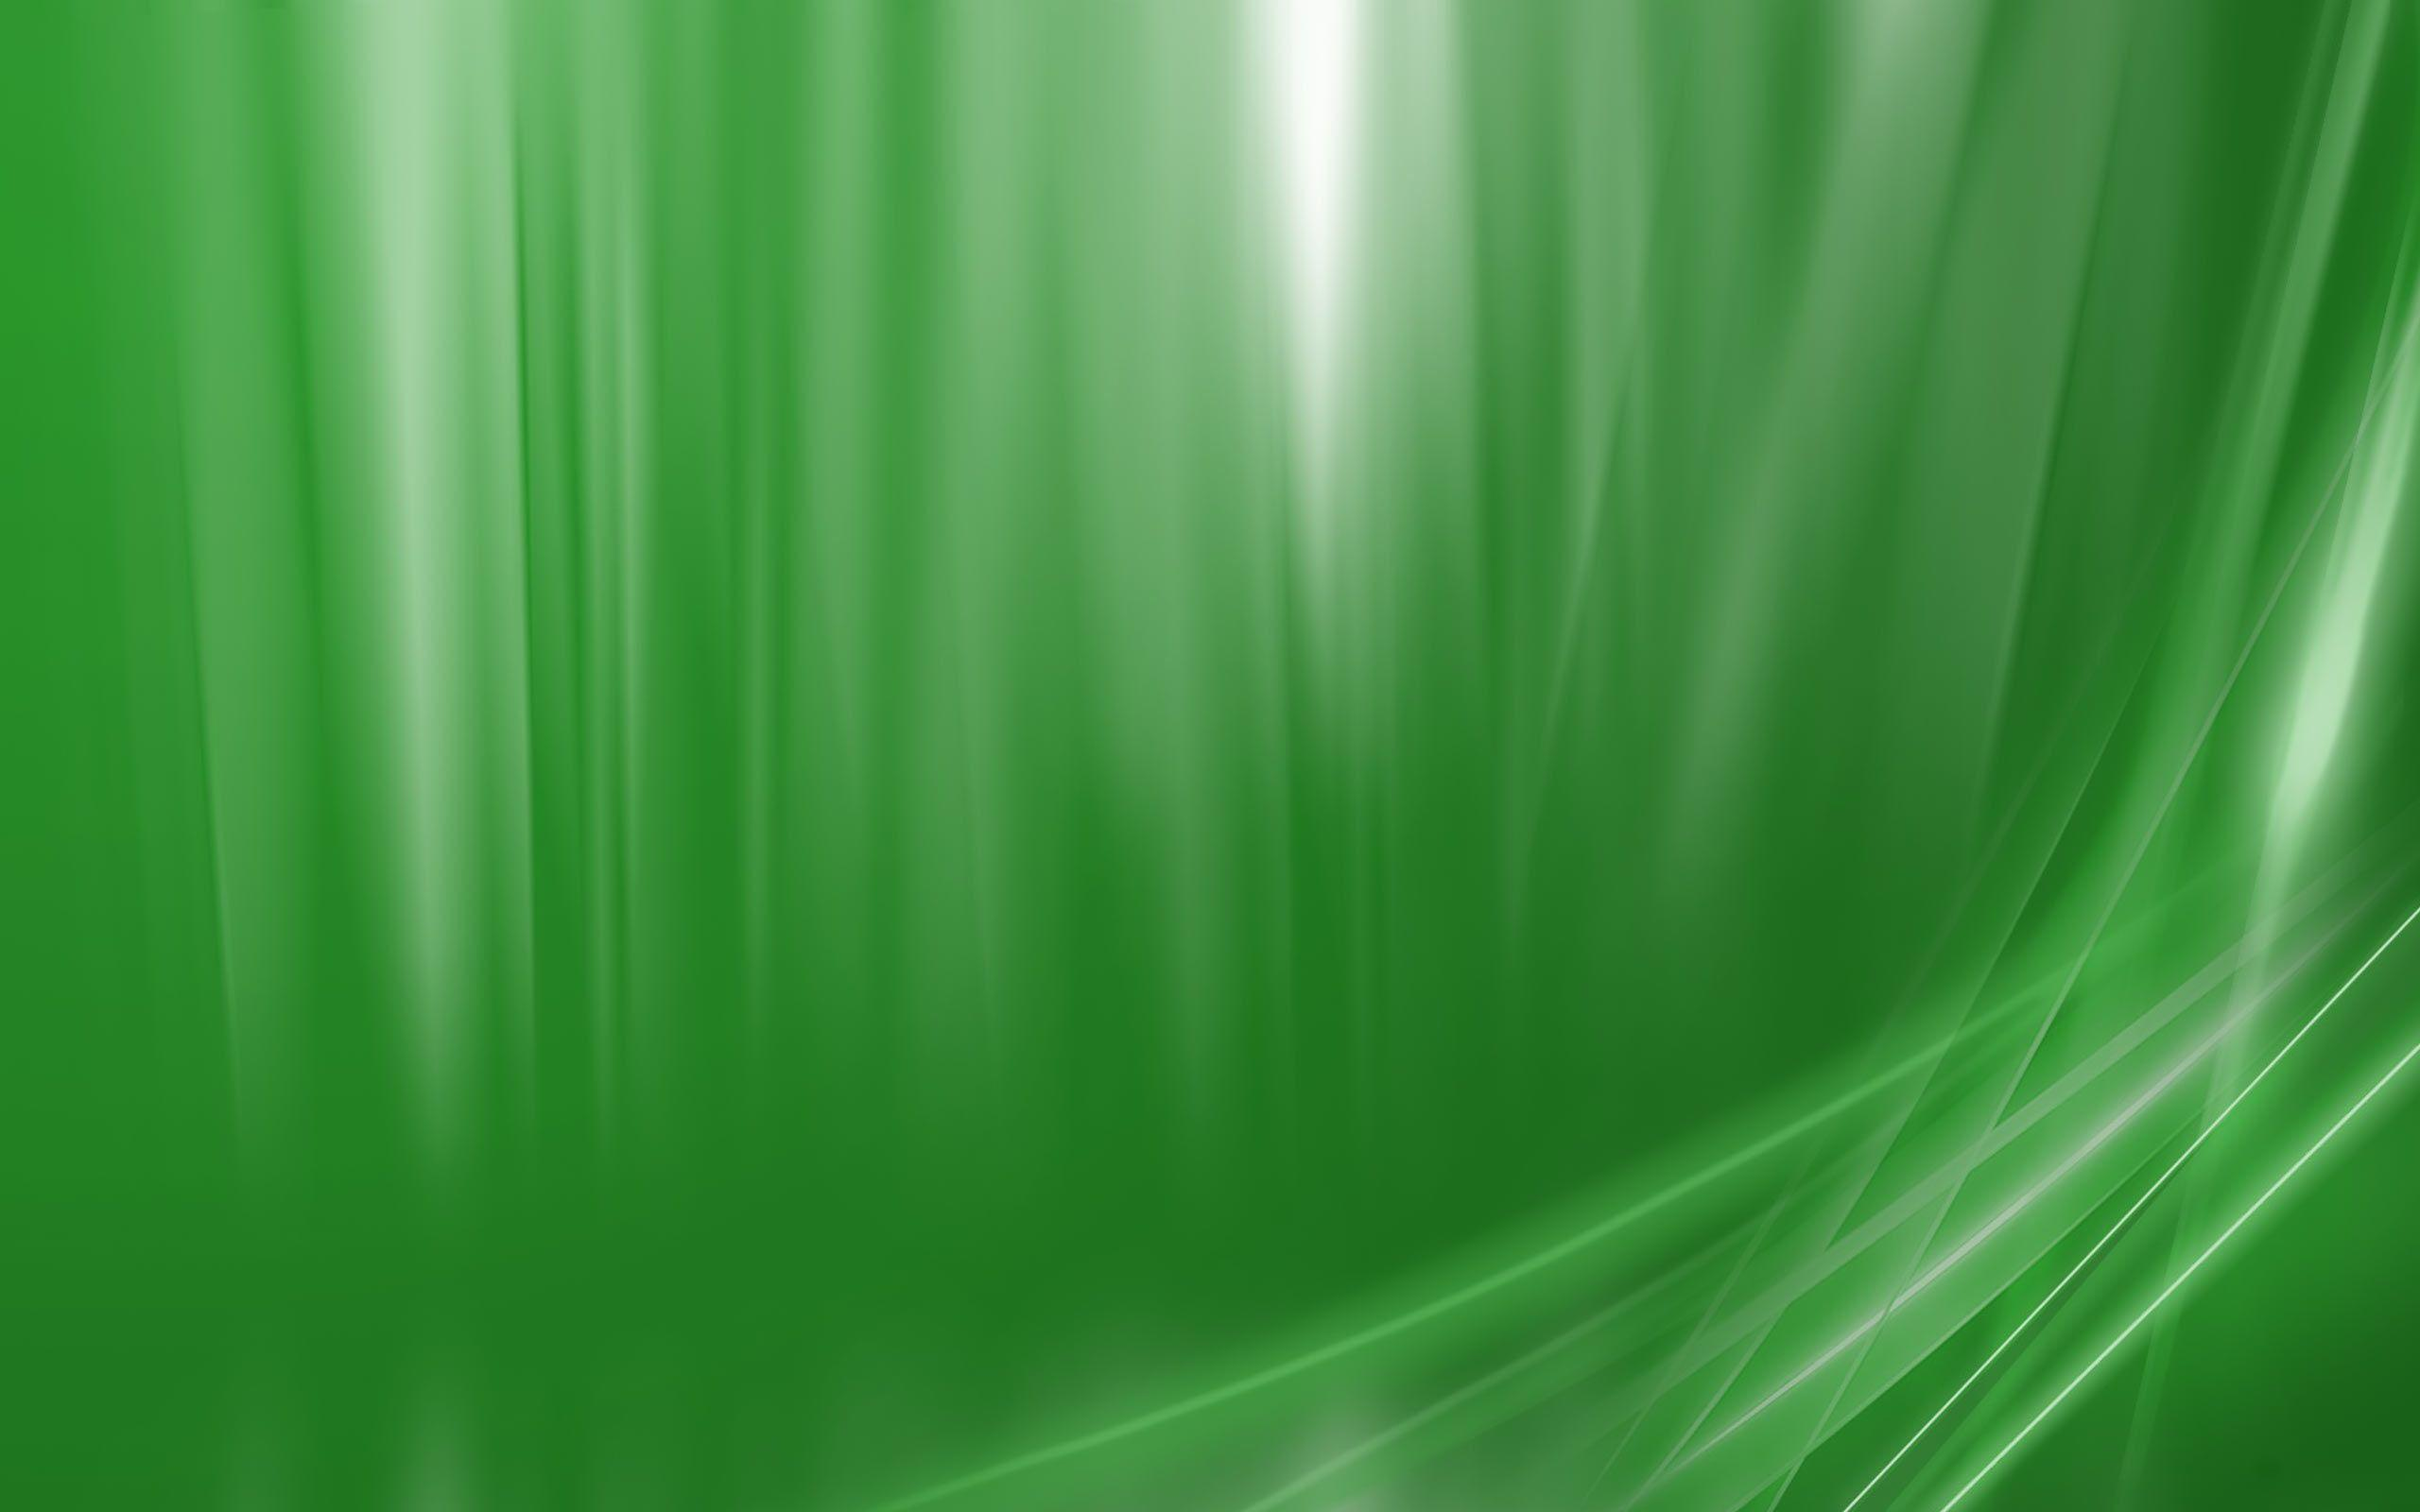 Green Backgrounds 57 193255 Image HD Wallpapers